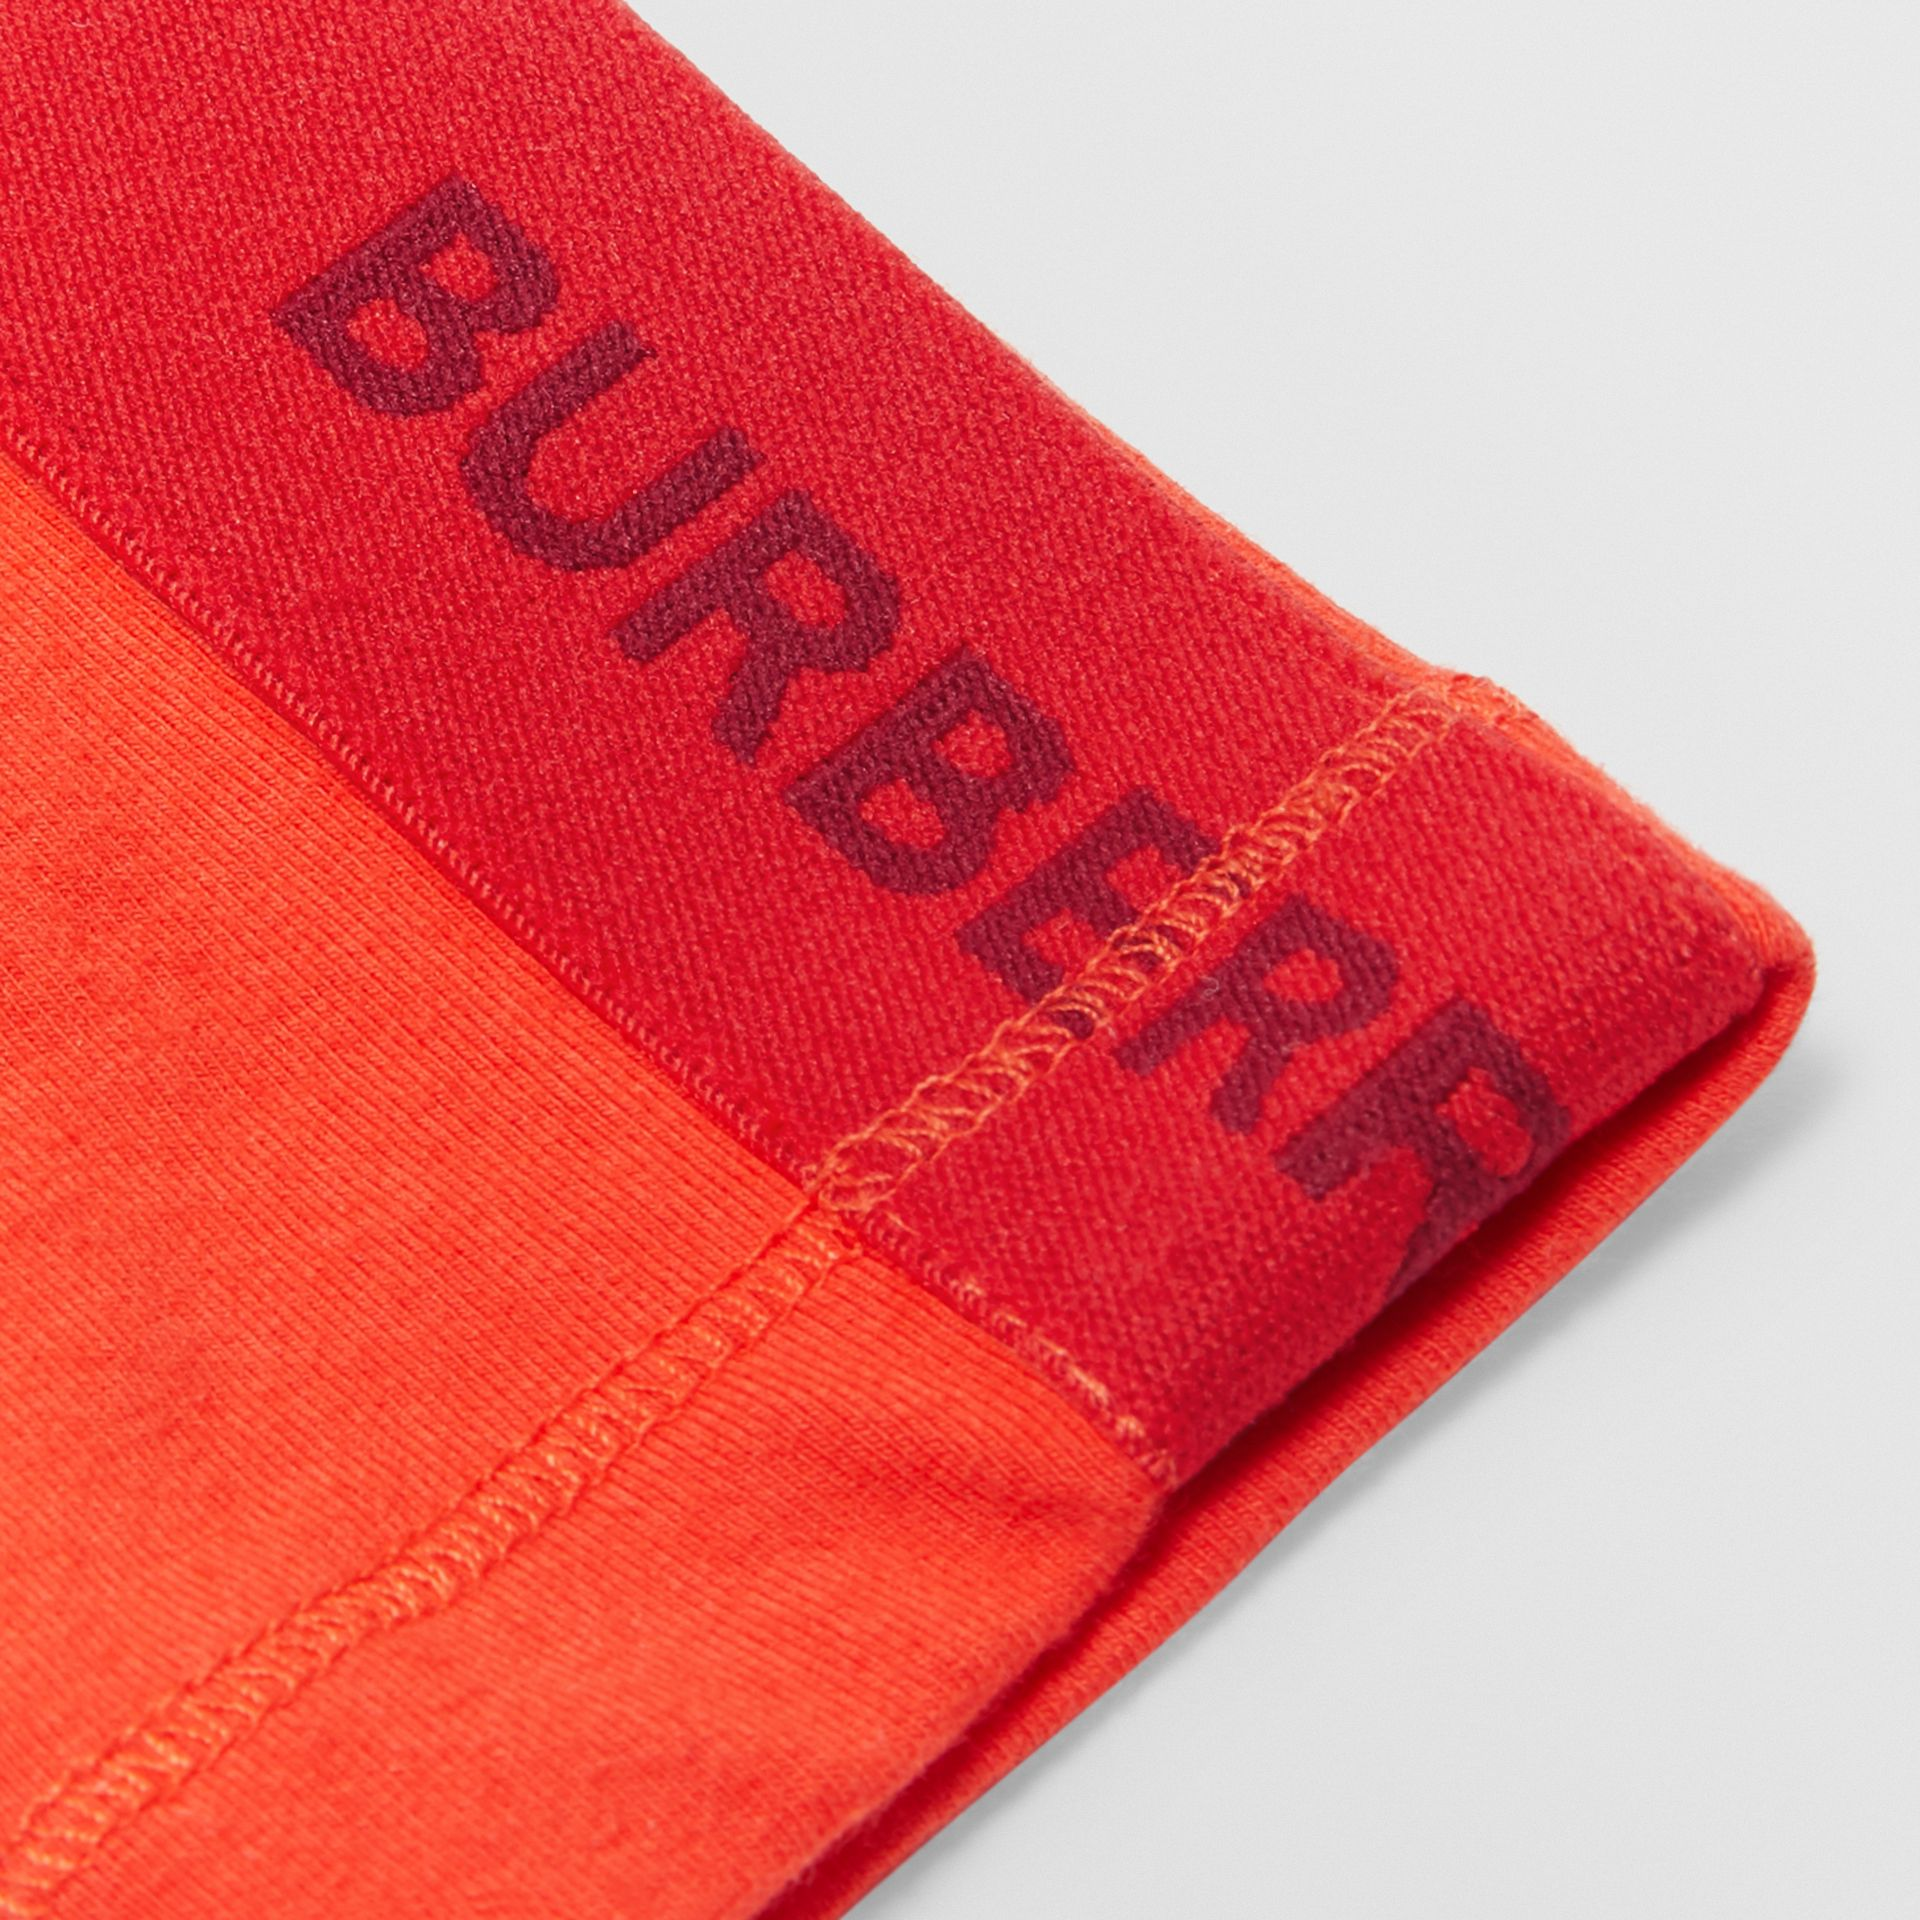 Logo Detail Stretch Cotton Leggings in Bright Red - Children | Burberry Australia - gallery image 1